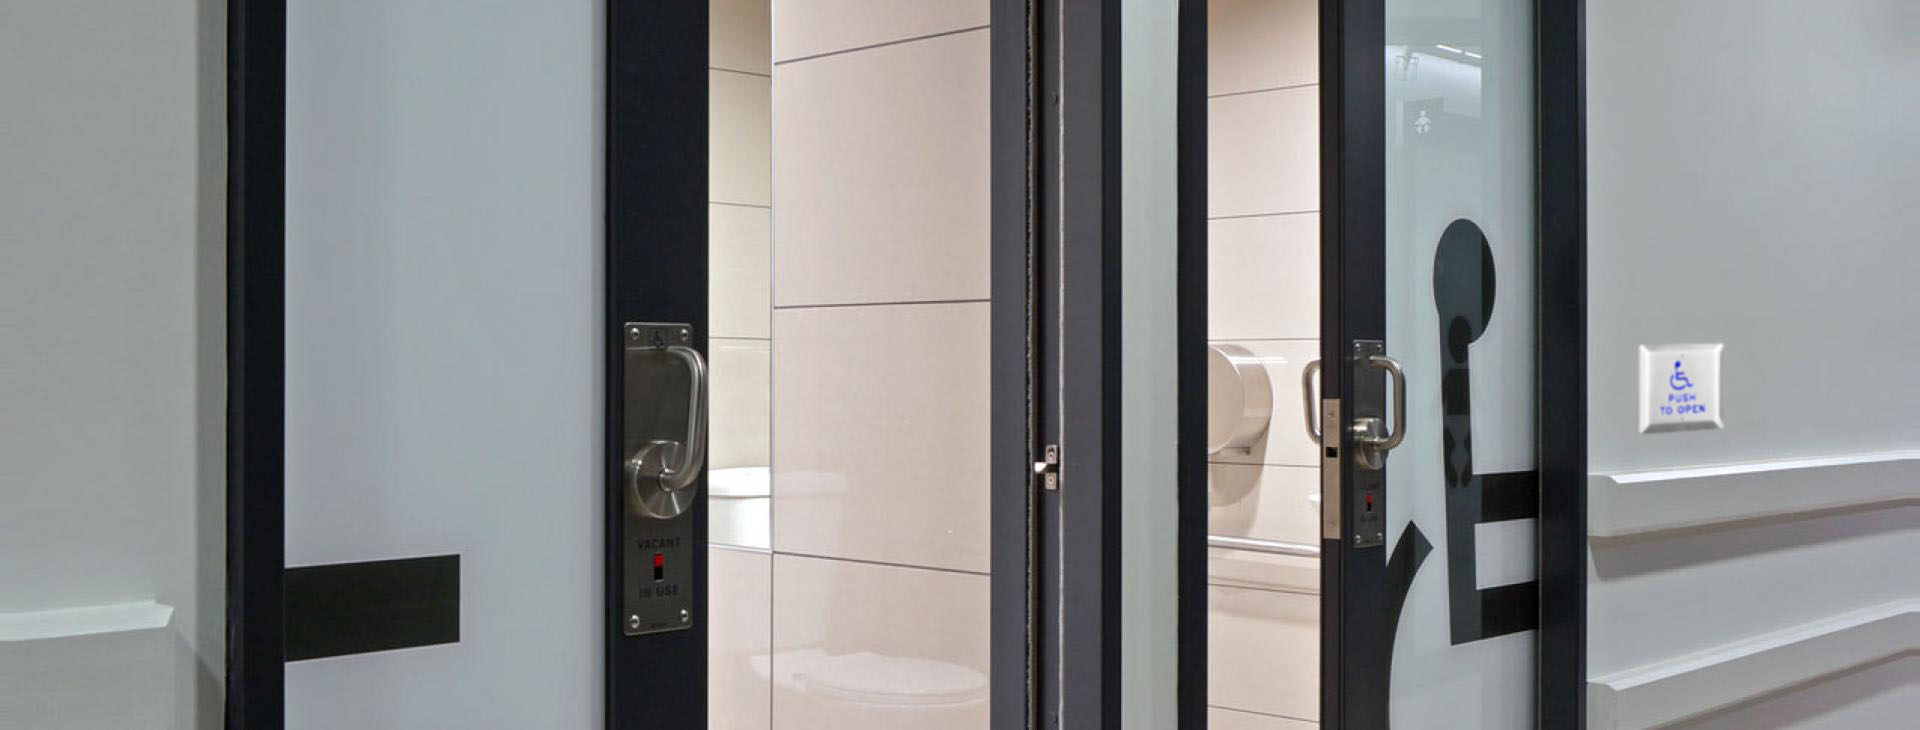 Automatic handicap washroom doors operator specialist in